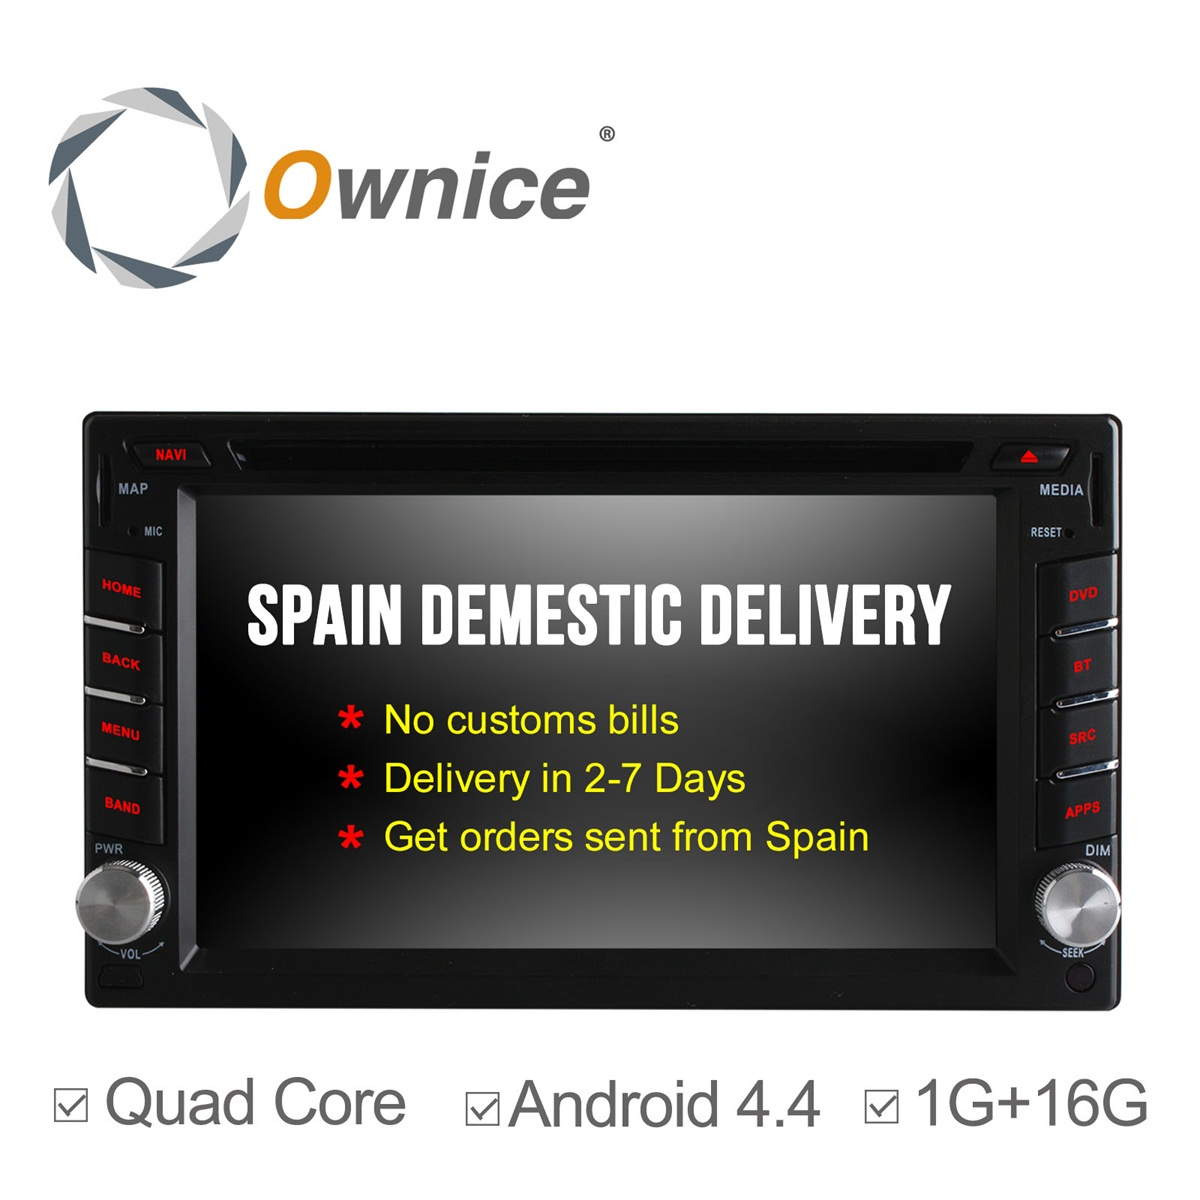 Ownice C300 Quad Core Android 4.4 Universal Car DVD Player GPS Navigation 2Din Car Stereo Radio 16G ROM support mirror link IPOD android 5 1 car radio double din stereo quad core gps navi wifi bluetooth rds sd usb subwoofer obd2 3g 4g apple play mirror link